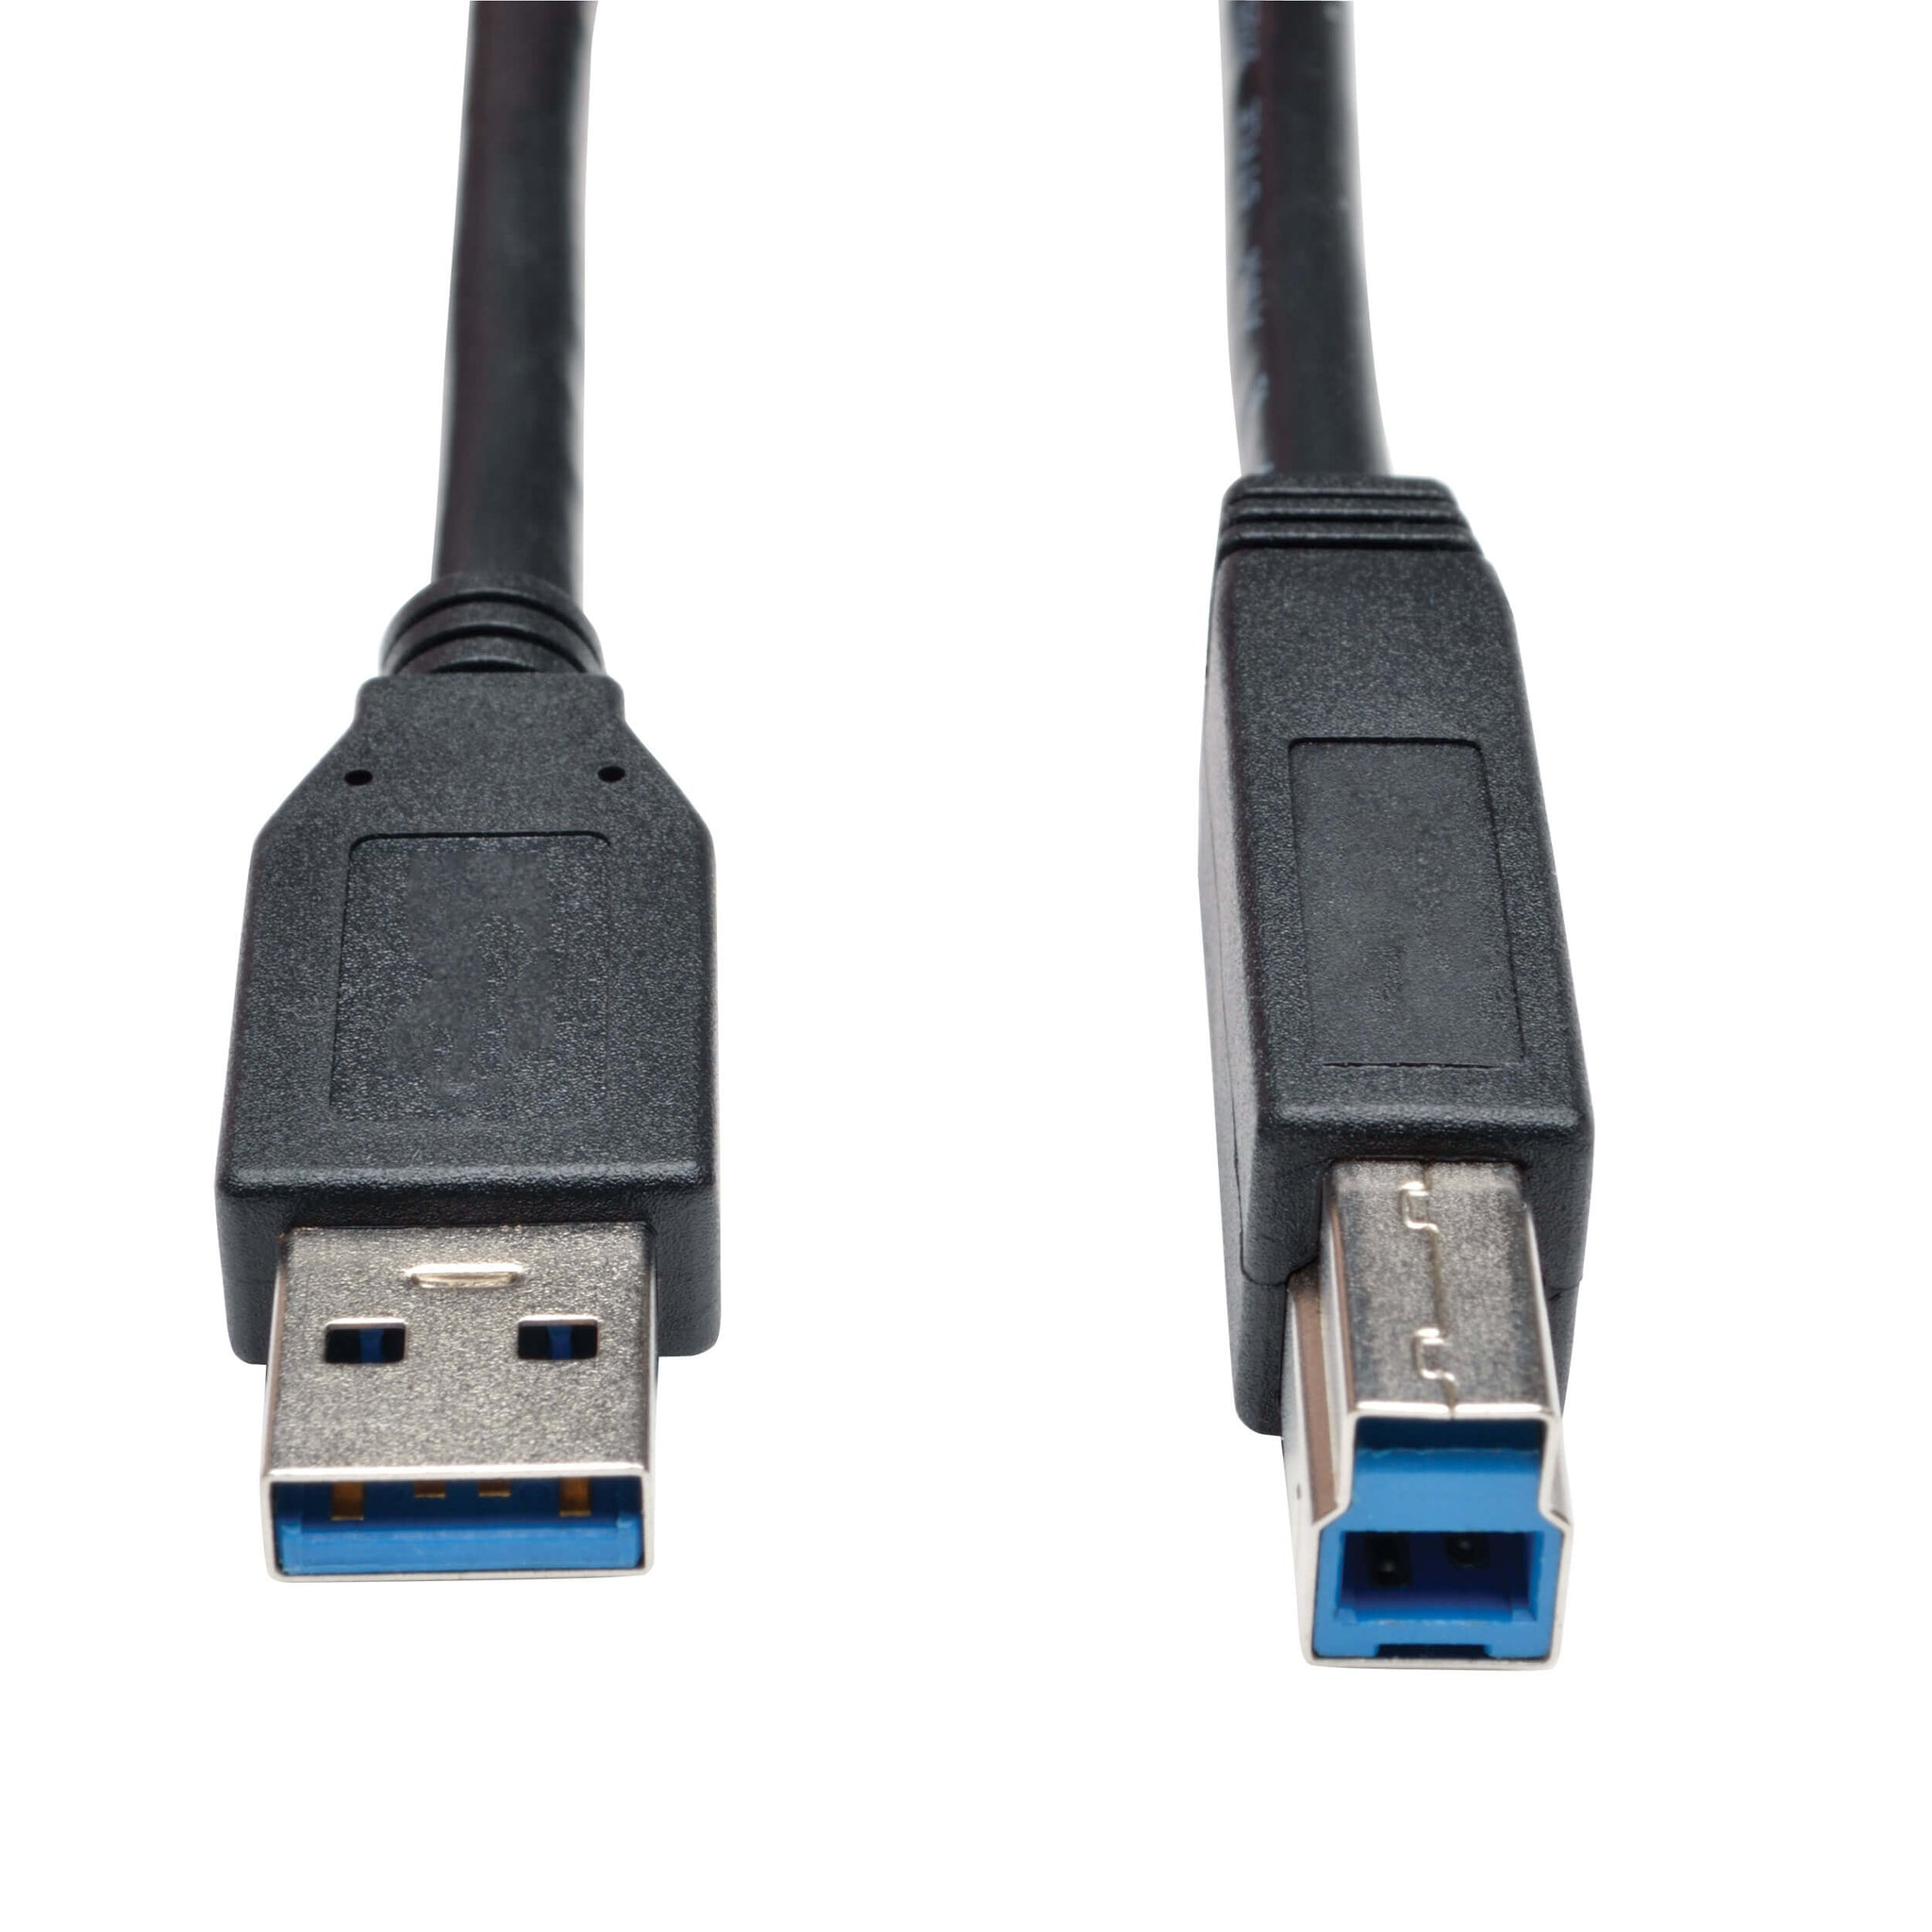 USB 3.0 SuperSpeed Device Cable (AB M/M) Black, (3', 6')